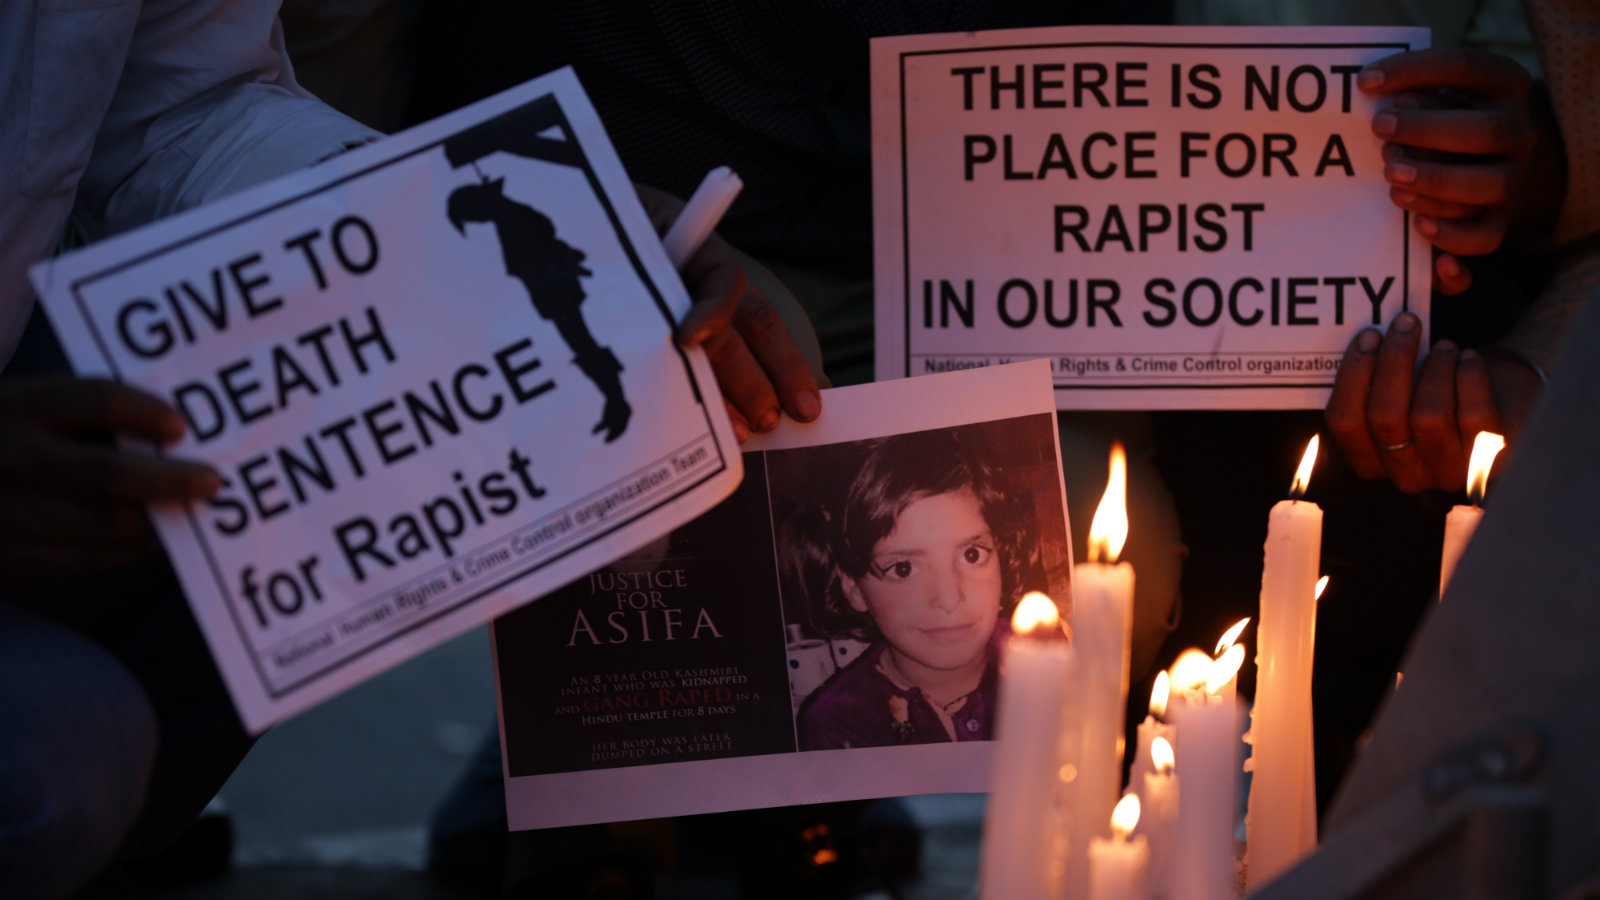 Indian people hold photos of Asifa Bano and candles during a candle light march to protest against the rape and murder of eight-year-old girl in Kathua, in Amritsar, India, 15 April 2018. Indian people staged various protests to bring attention to rape cases and violence against women in India, after an eight-year-old girl was gang raped and murdered, in Kathua. Protesters demanded justice for the victim and action against the accused.